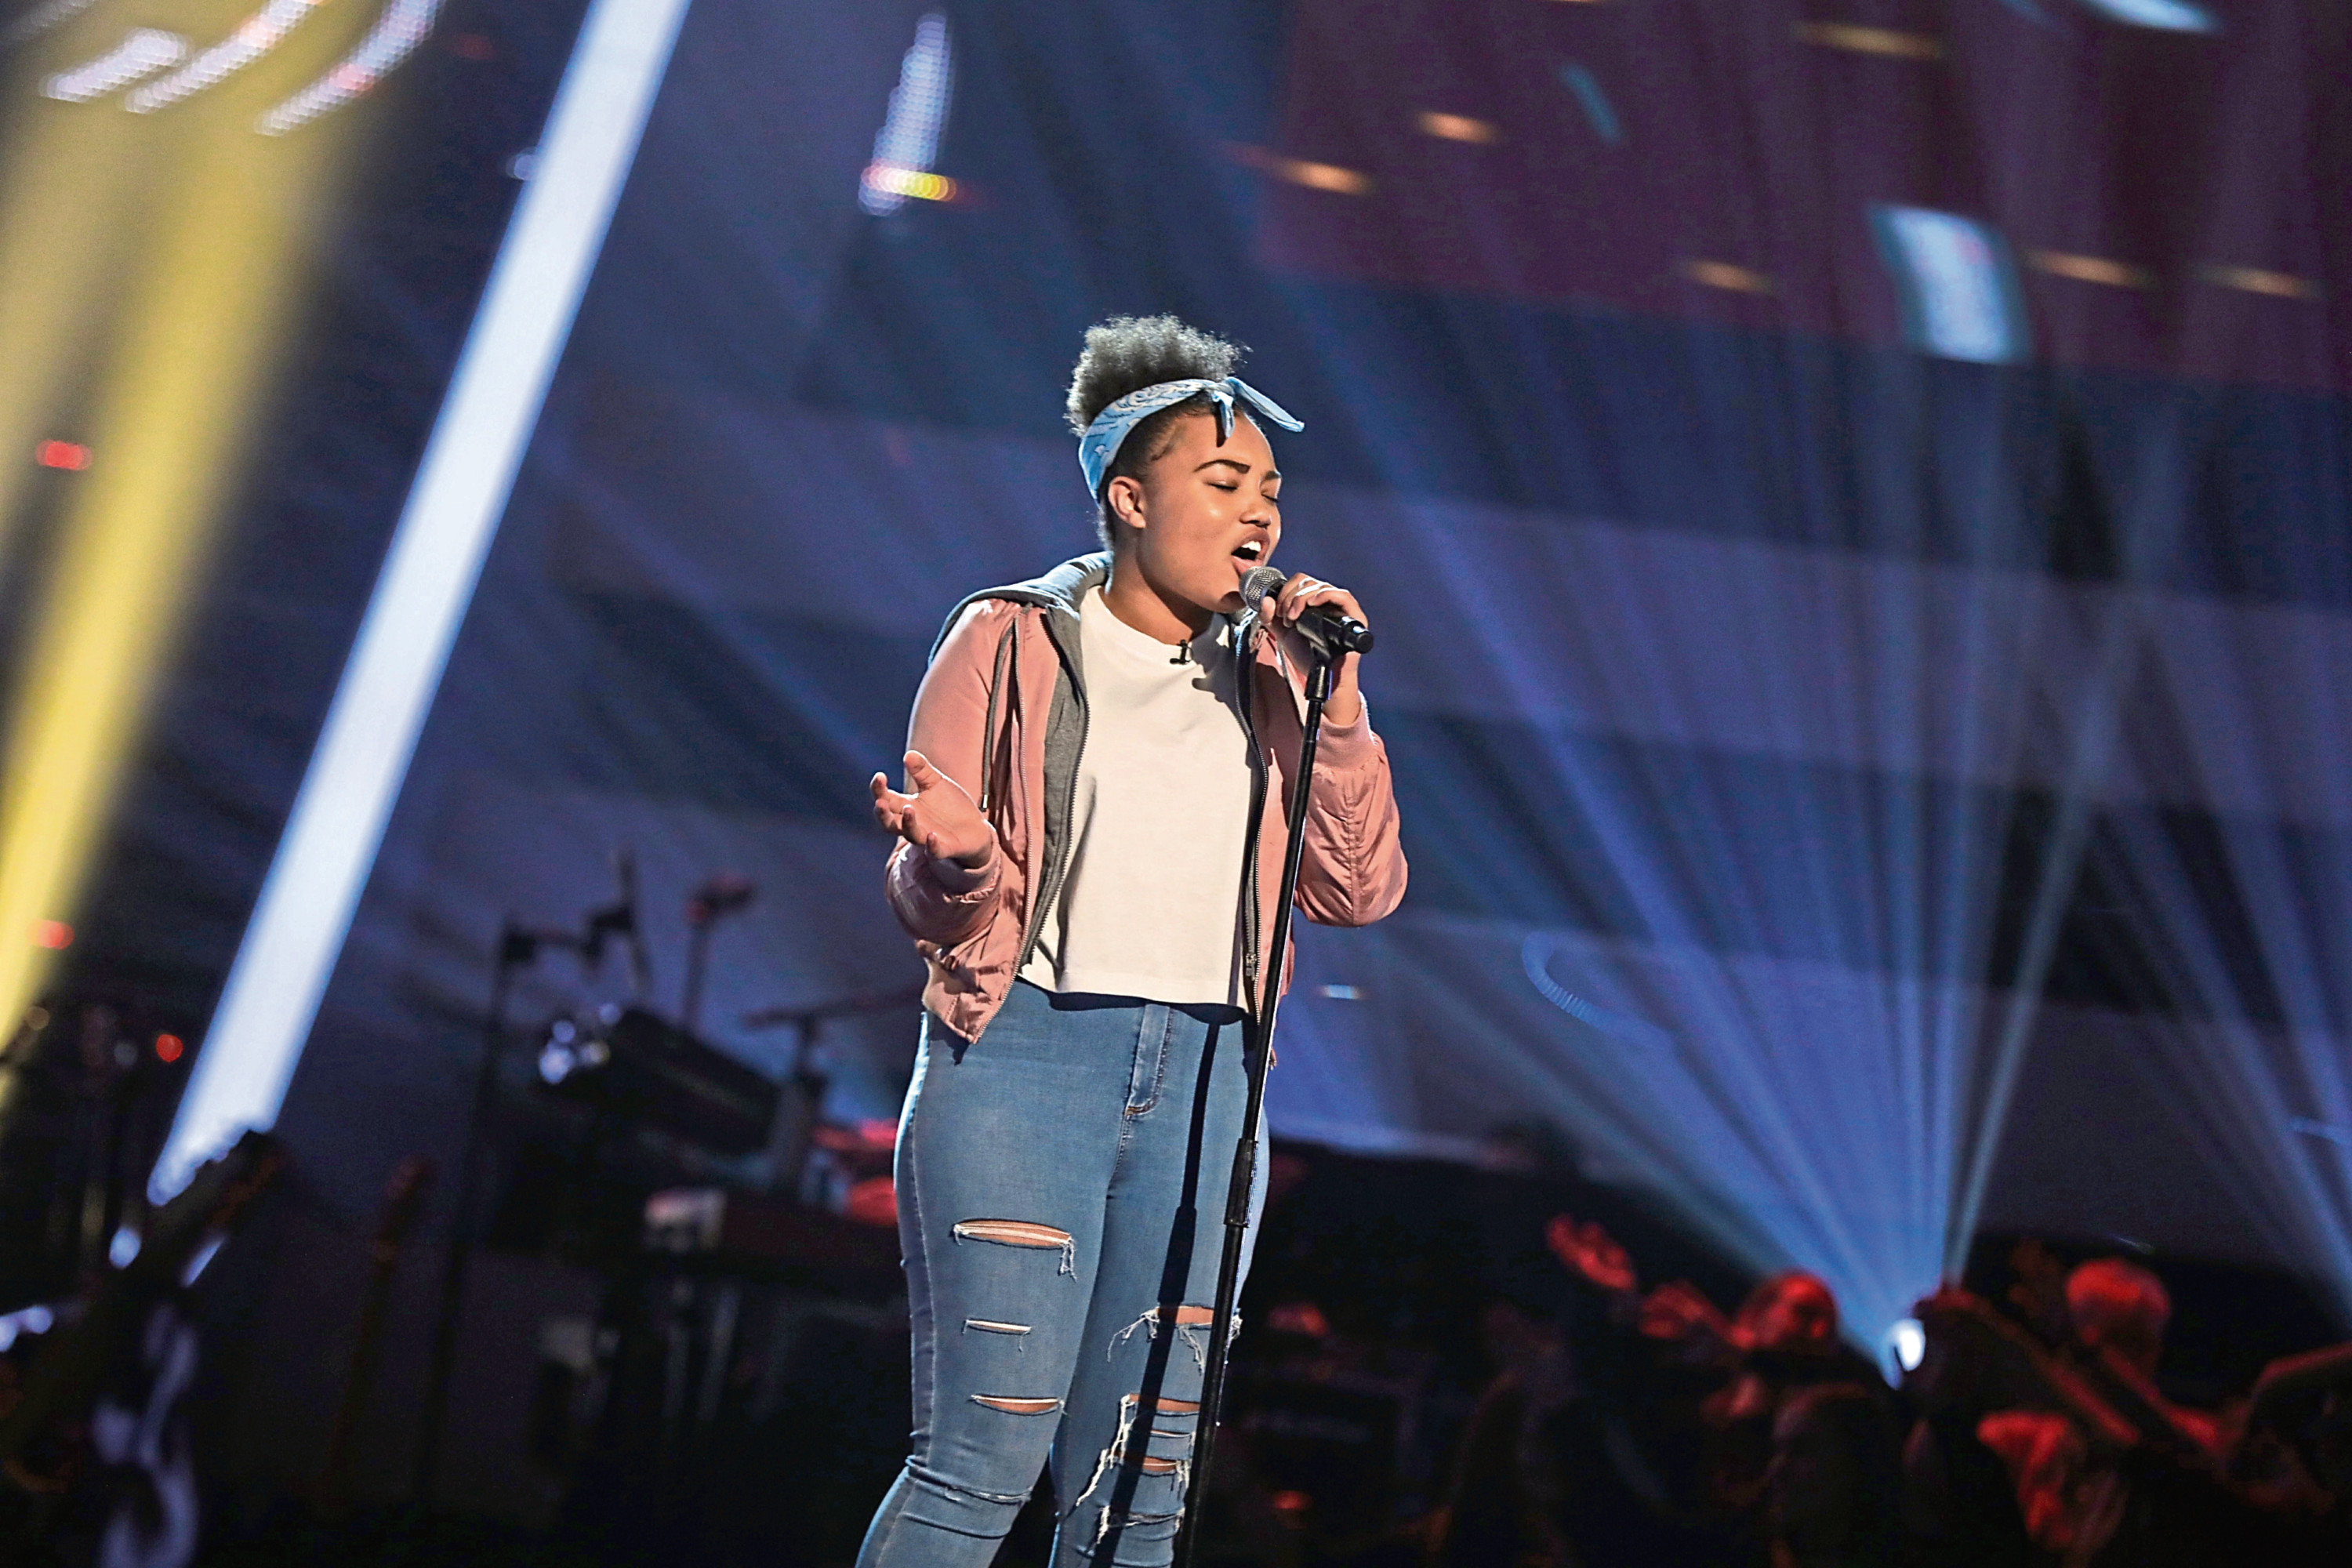 Aiysha Russell, 14, from Drumoak, appeared on The Voice Kids